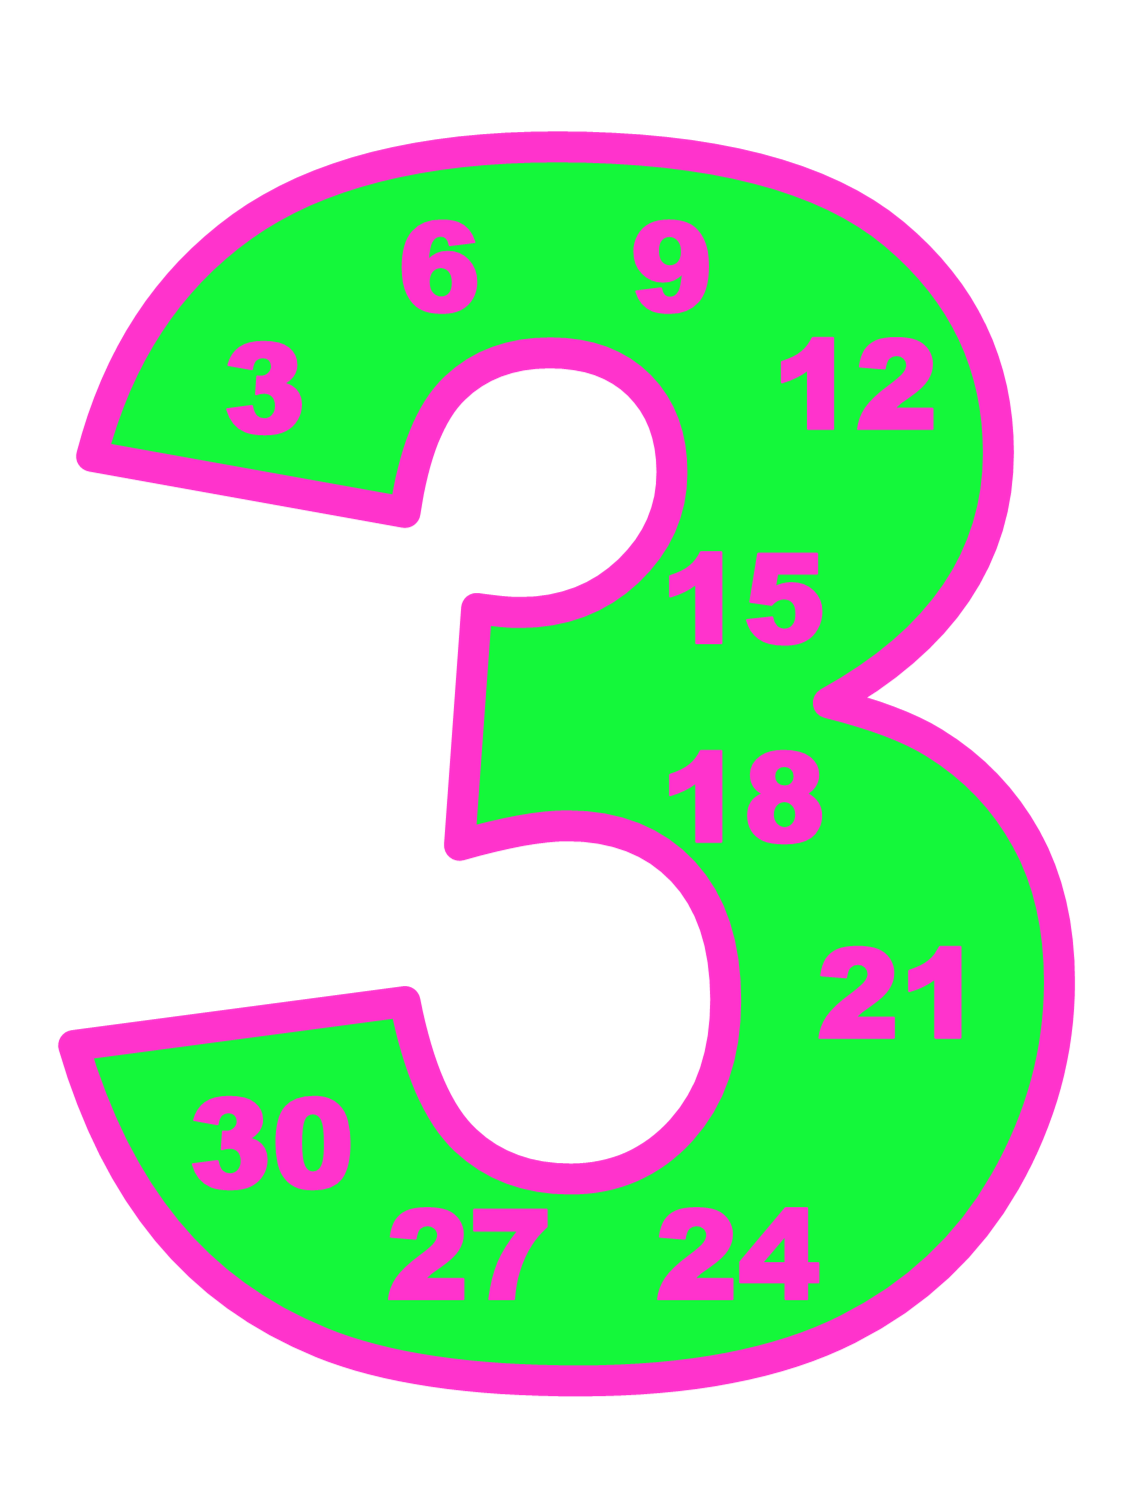 Multiplication clipart numeracy. Pin by vero on